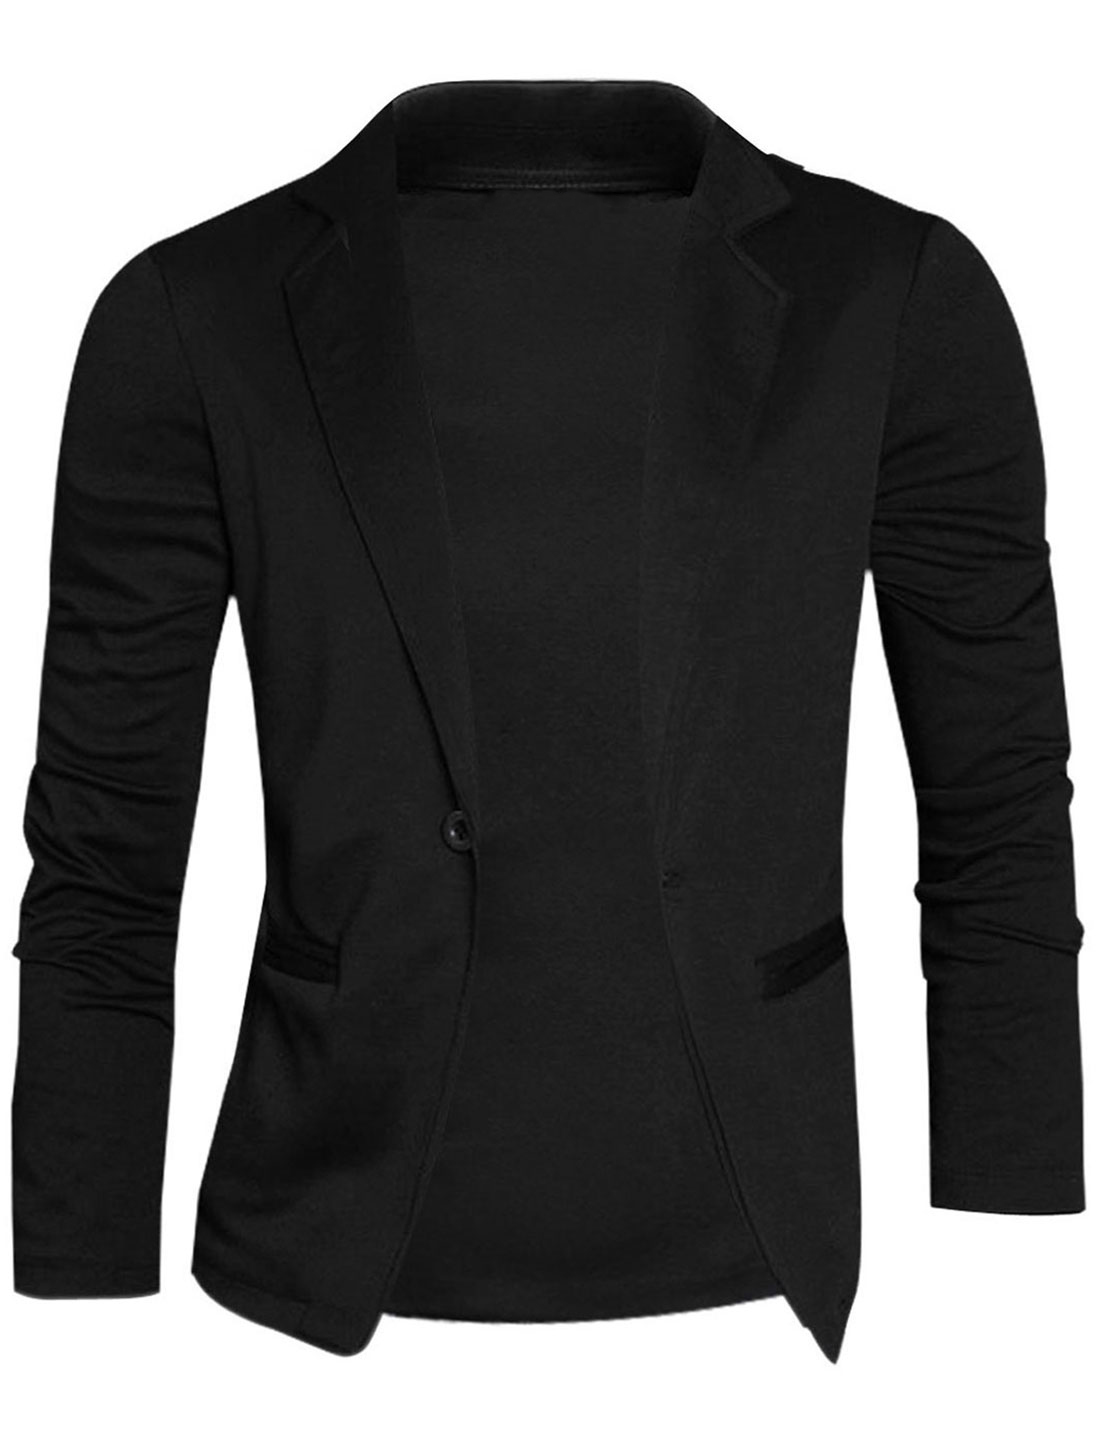 Mens Black Korean Single Button Closure Solid Color Stretchy Pockets Frong Blazer M